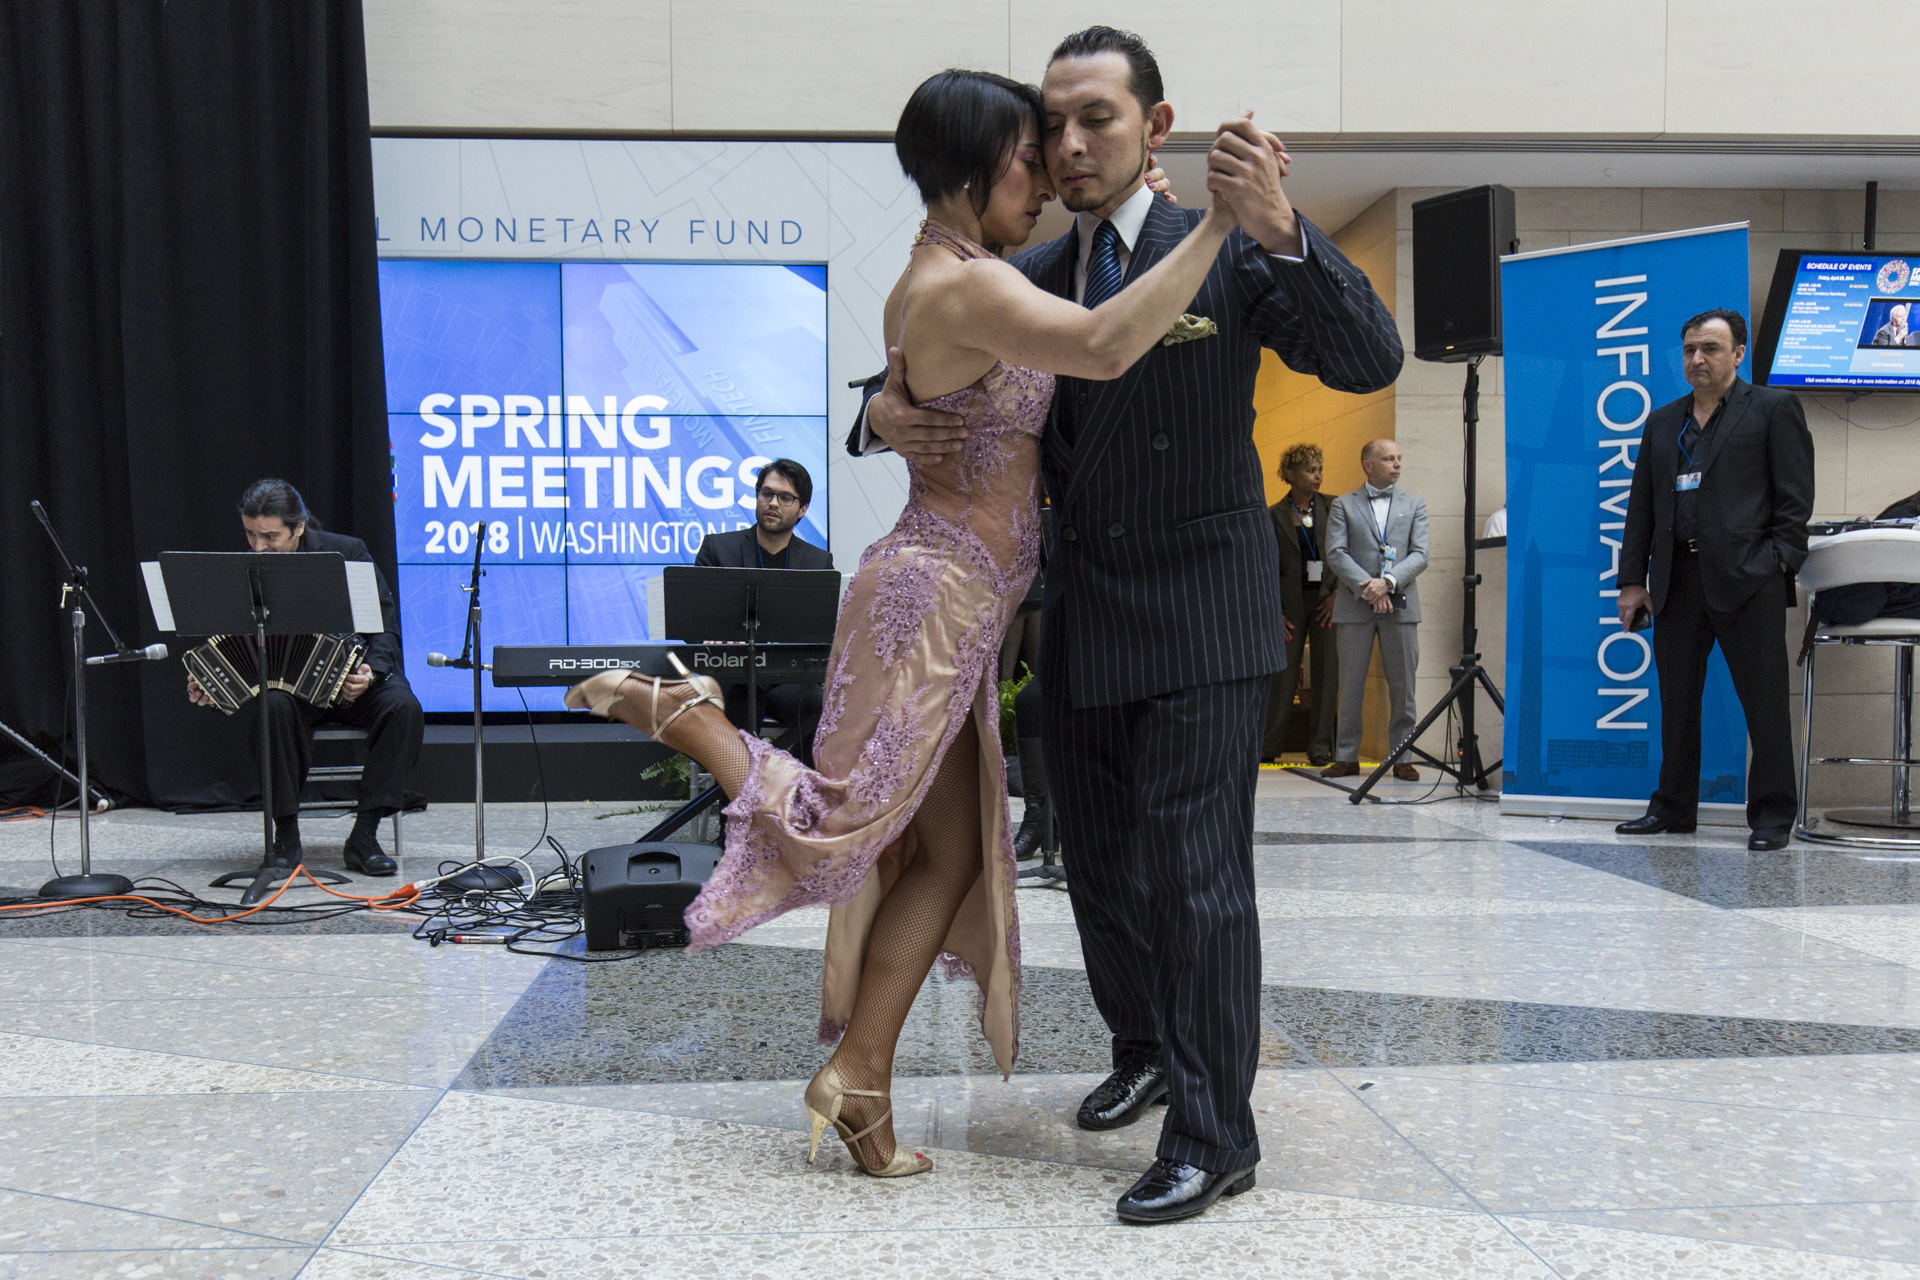 Cultural Event Argentine Tango Dance Step Diagram Multiple Dancers Argentinian This Which Is Sponsored By The G 20 Presidency Features A Captivating Pair Of Performing Traditional